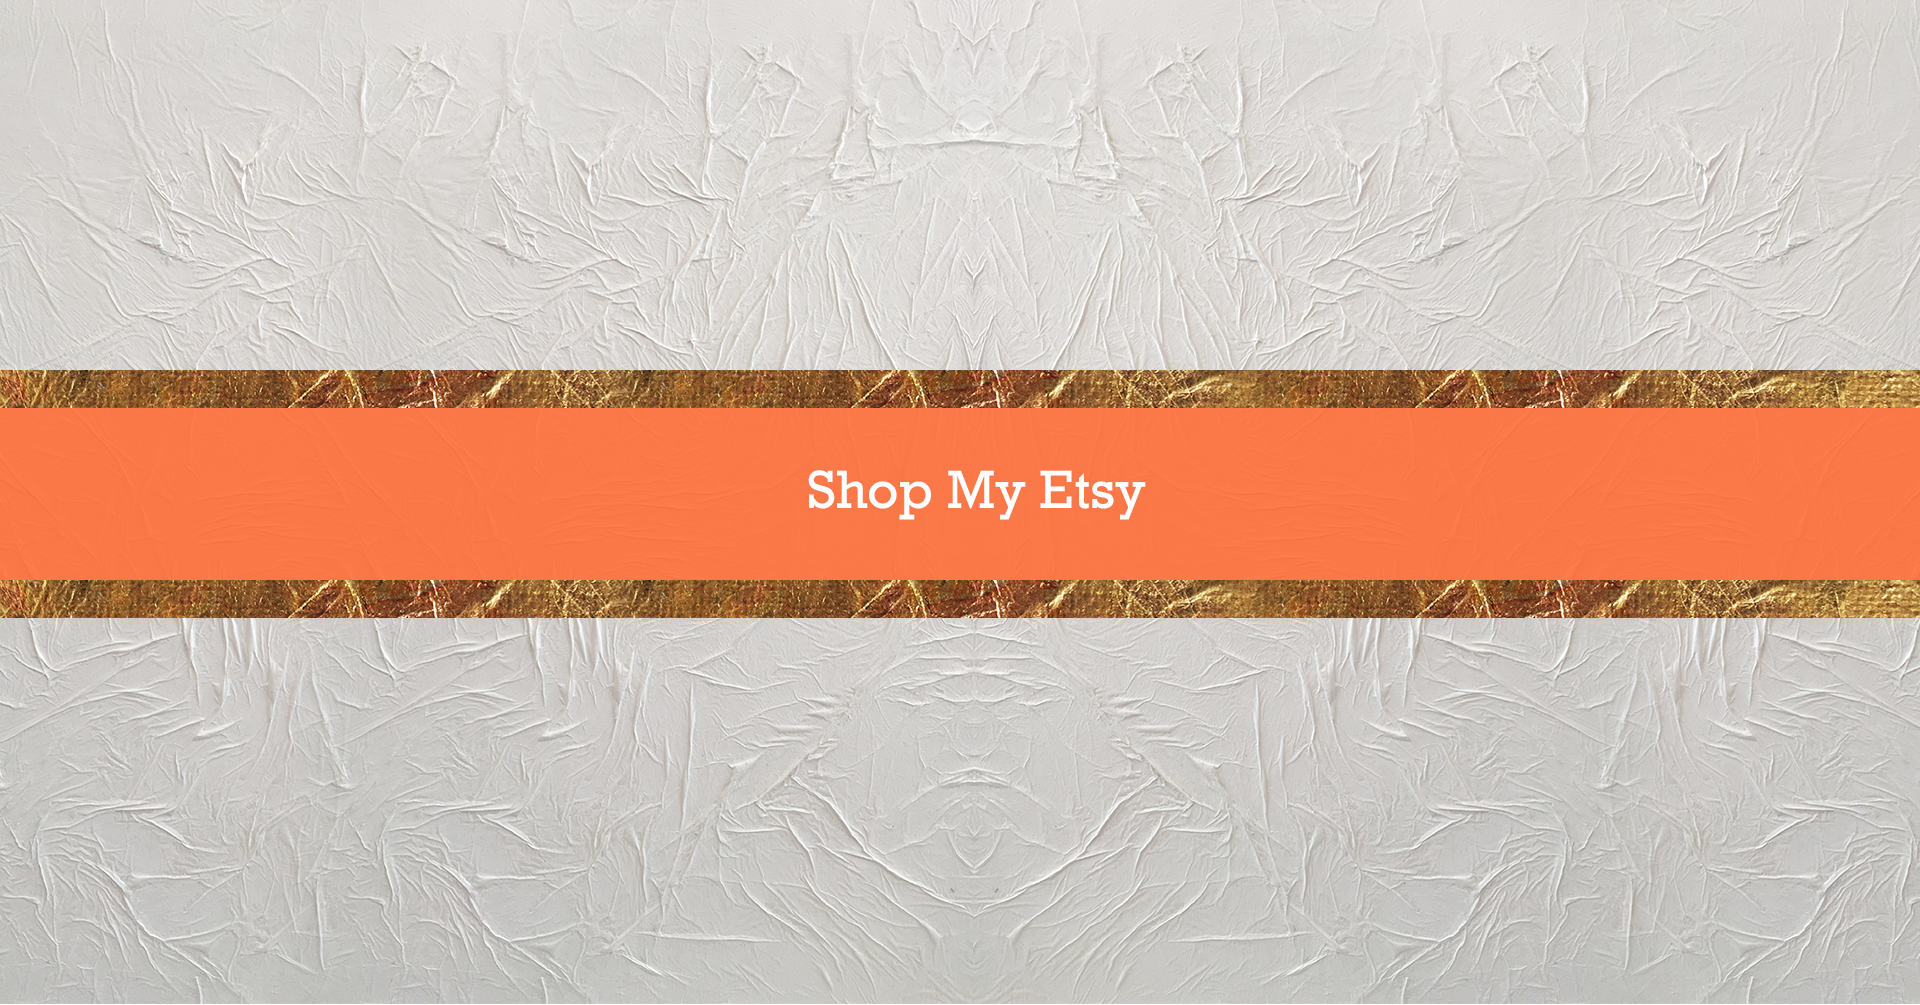 Click here to shop my Etsy store featuring handmade items and affordable downloads.